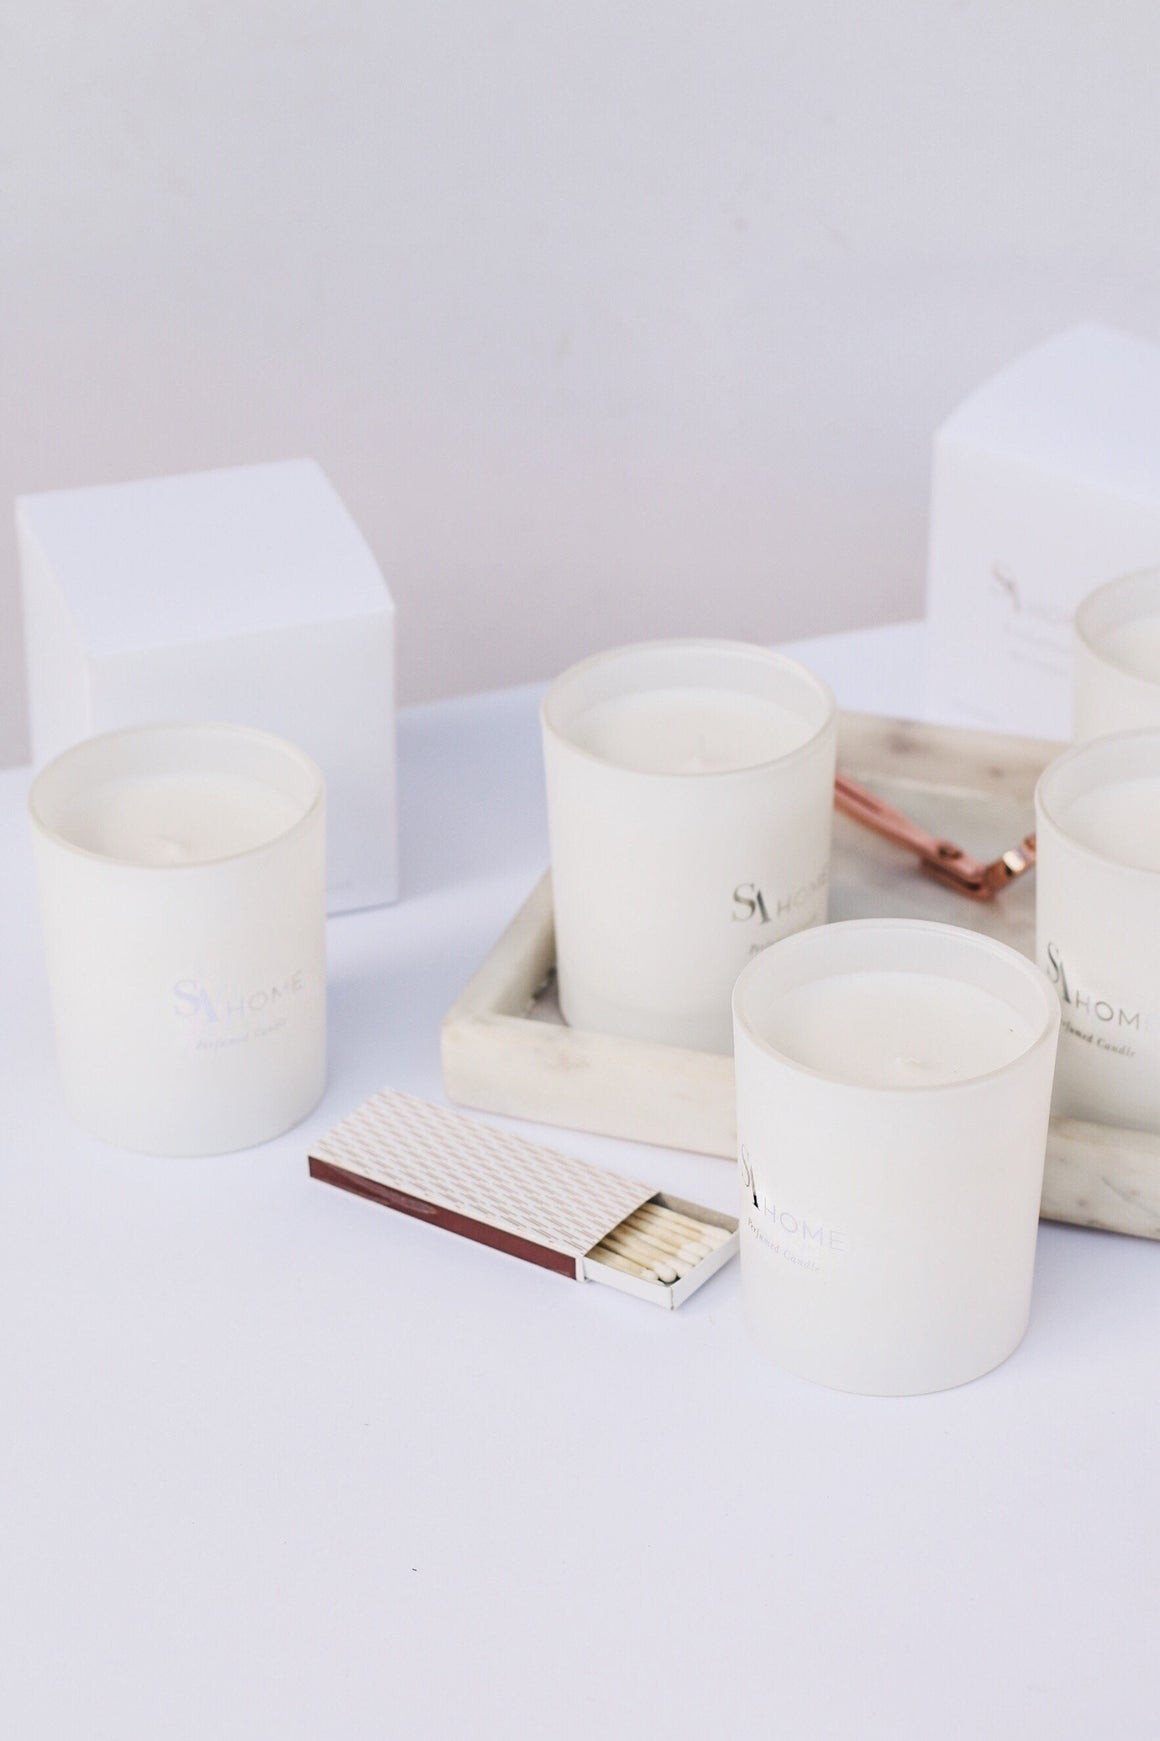 Create your own Signature Luxury Candle Set of 50 Scented Soy Wax Candles